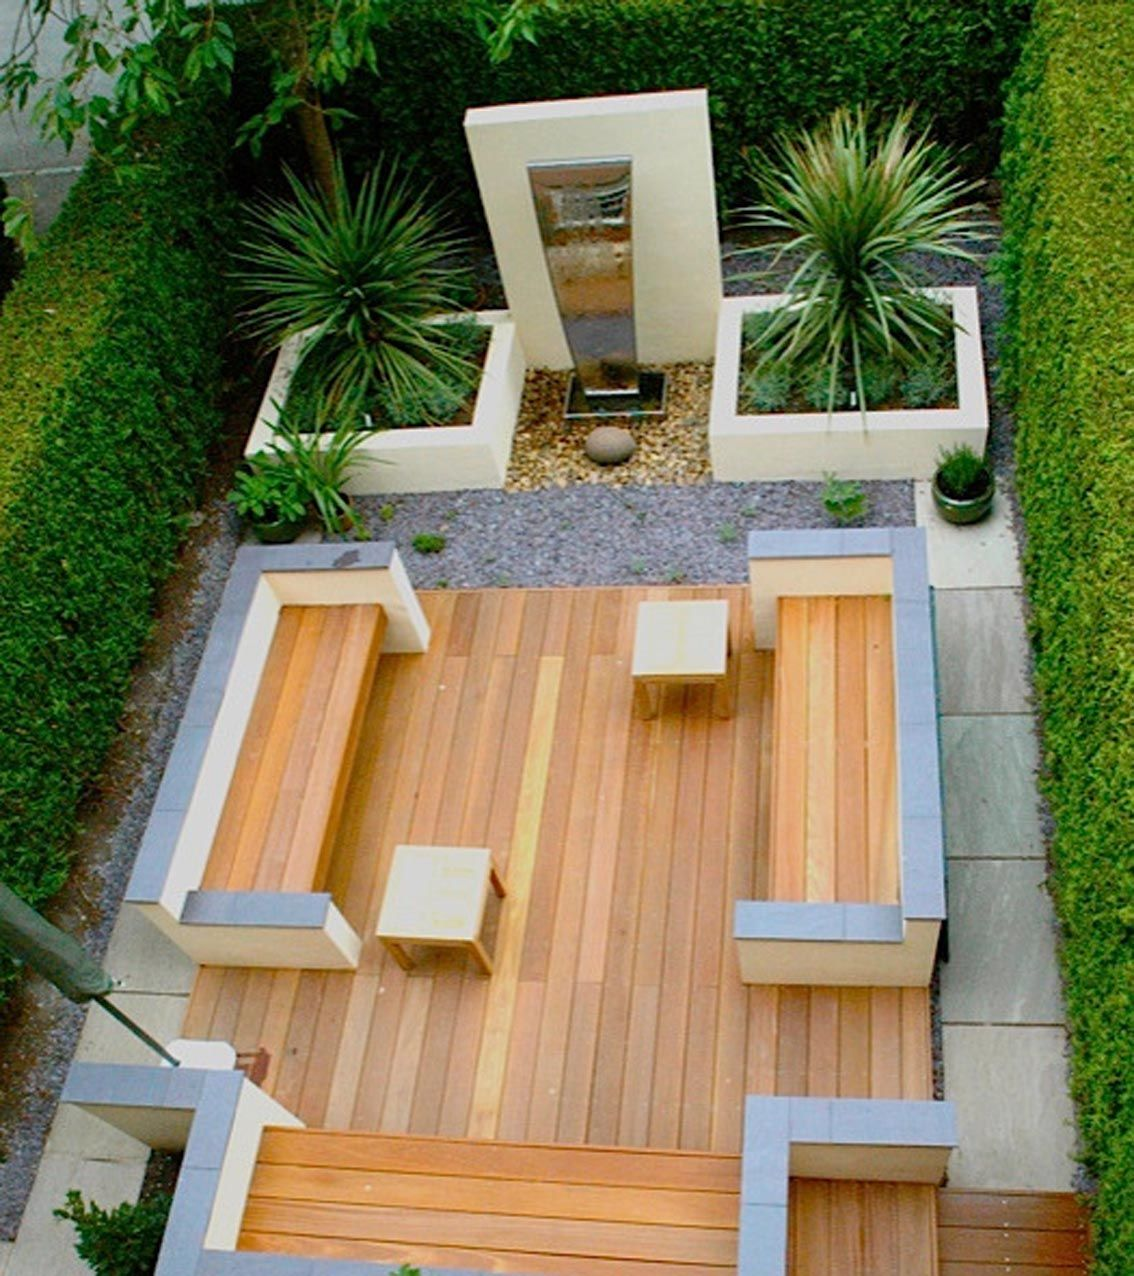 Garden Bed Design Ideas Garden Room Design Ideas Vertical Garden